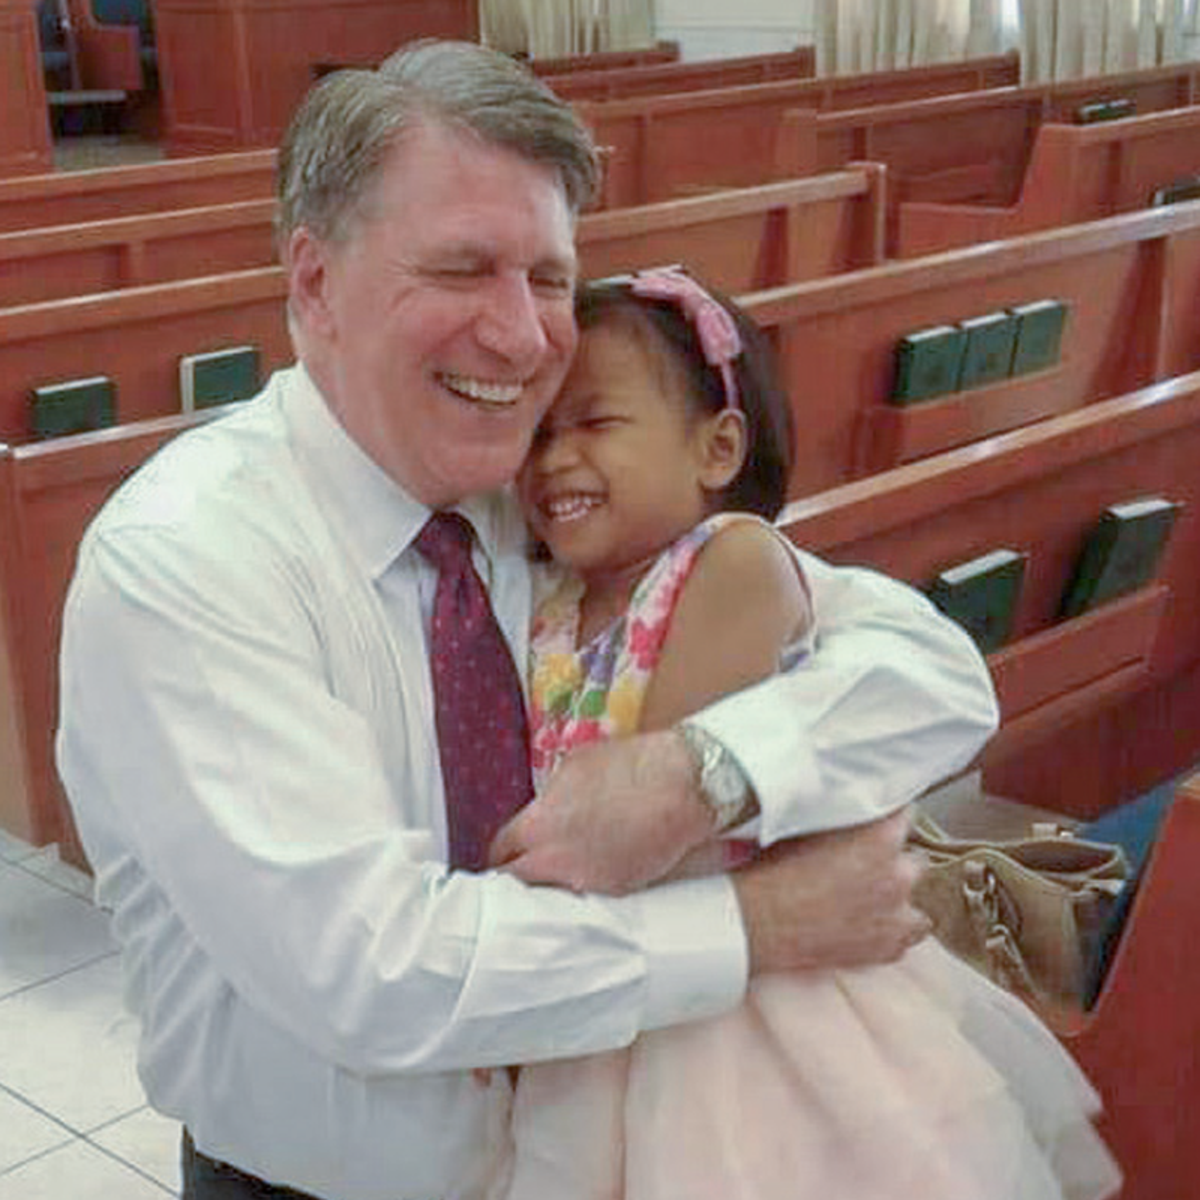 Elder Schmutz hugging a child in the Philippines.